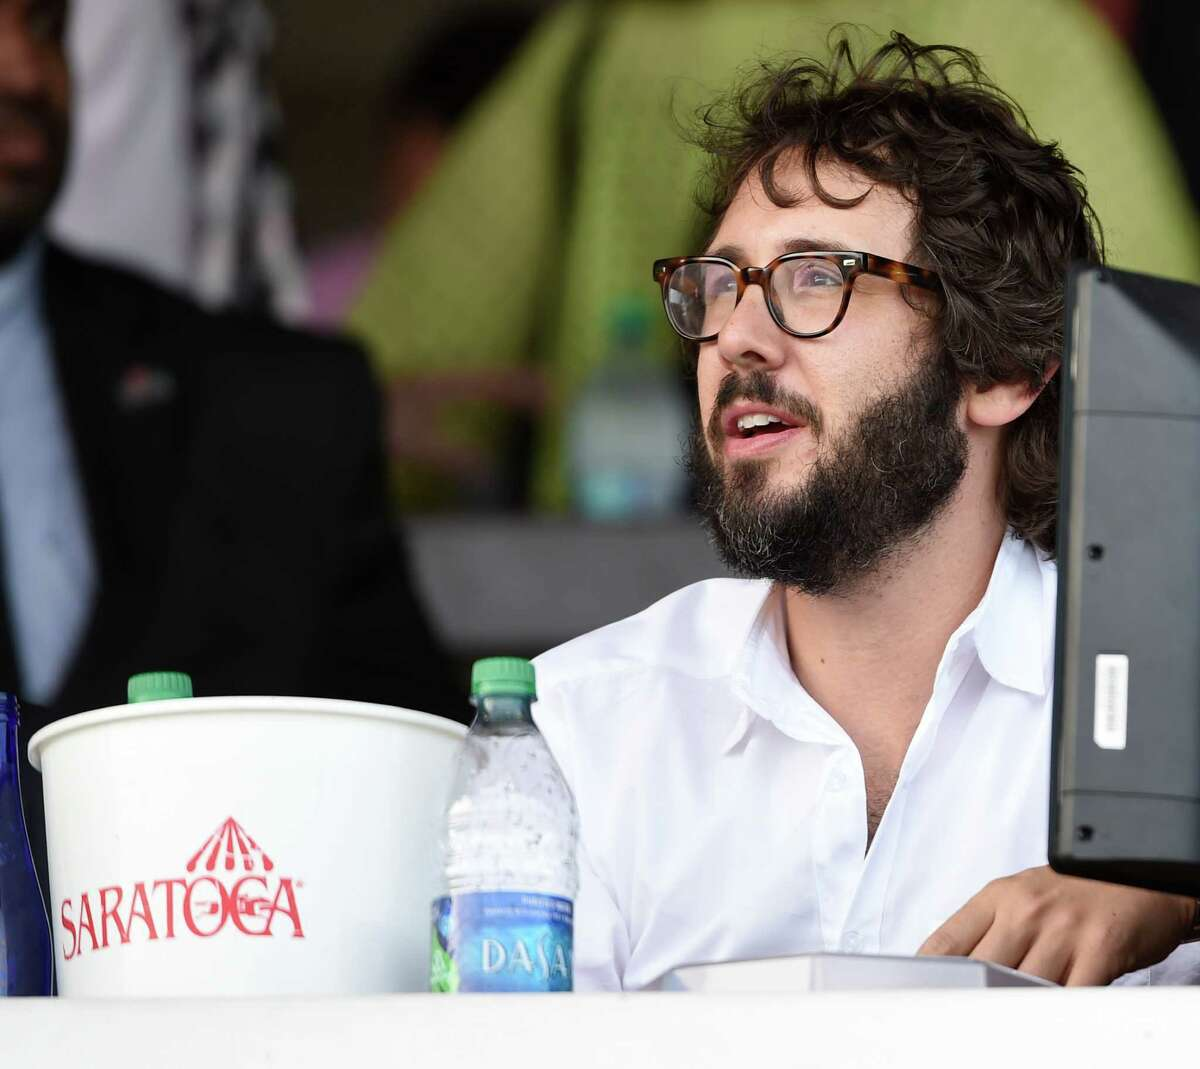 Entertainer Josh Groban enjoys a beautiful day Sunday July 24 2016 at the Saratoga Race Course in Saratoga Springs, N.Y. Groban will appear at SPAC tomorrow night. Click through the slideshow to see some of the rich and famous who have been spotted in Saratoga through the years.